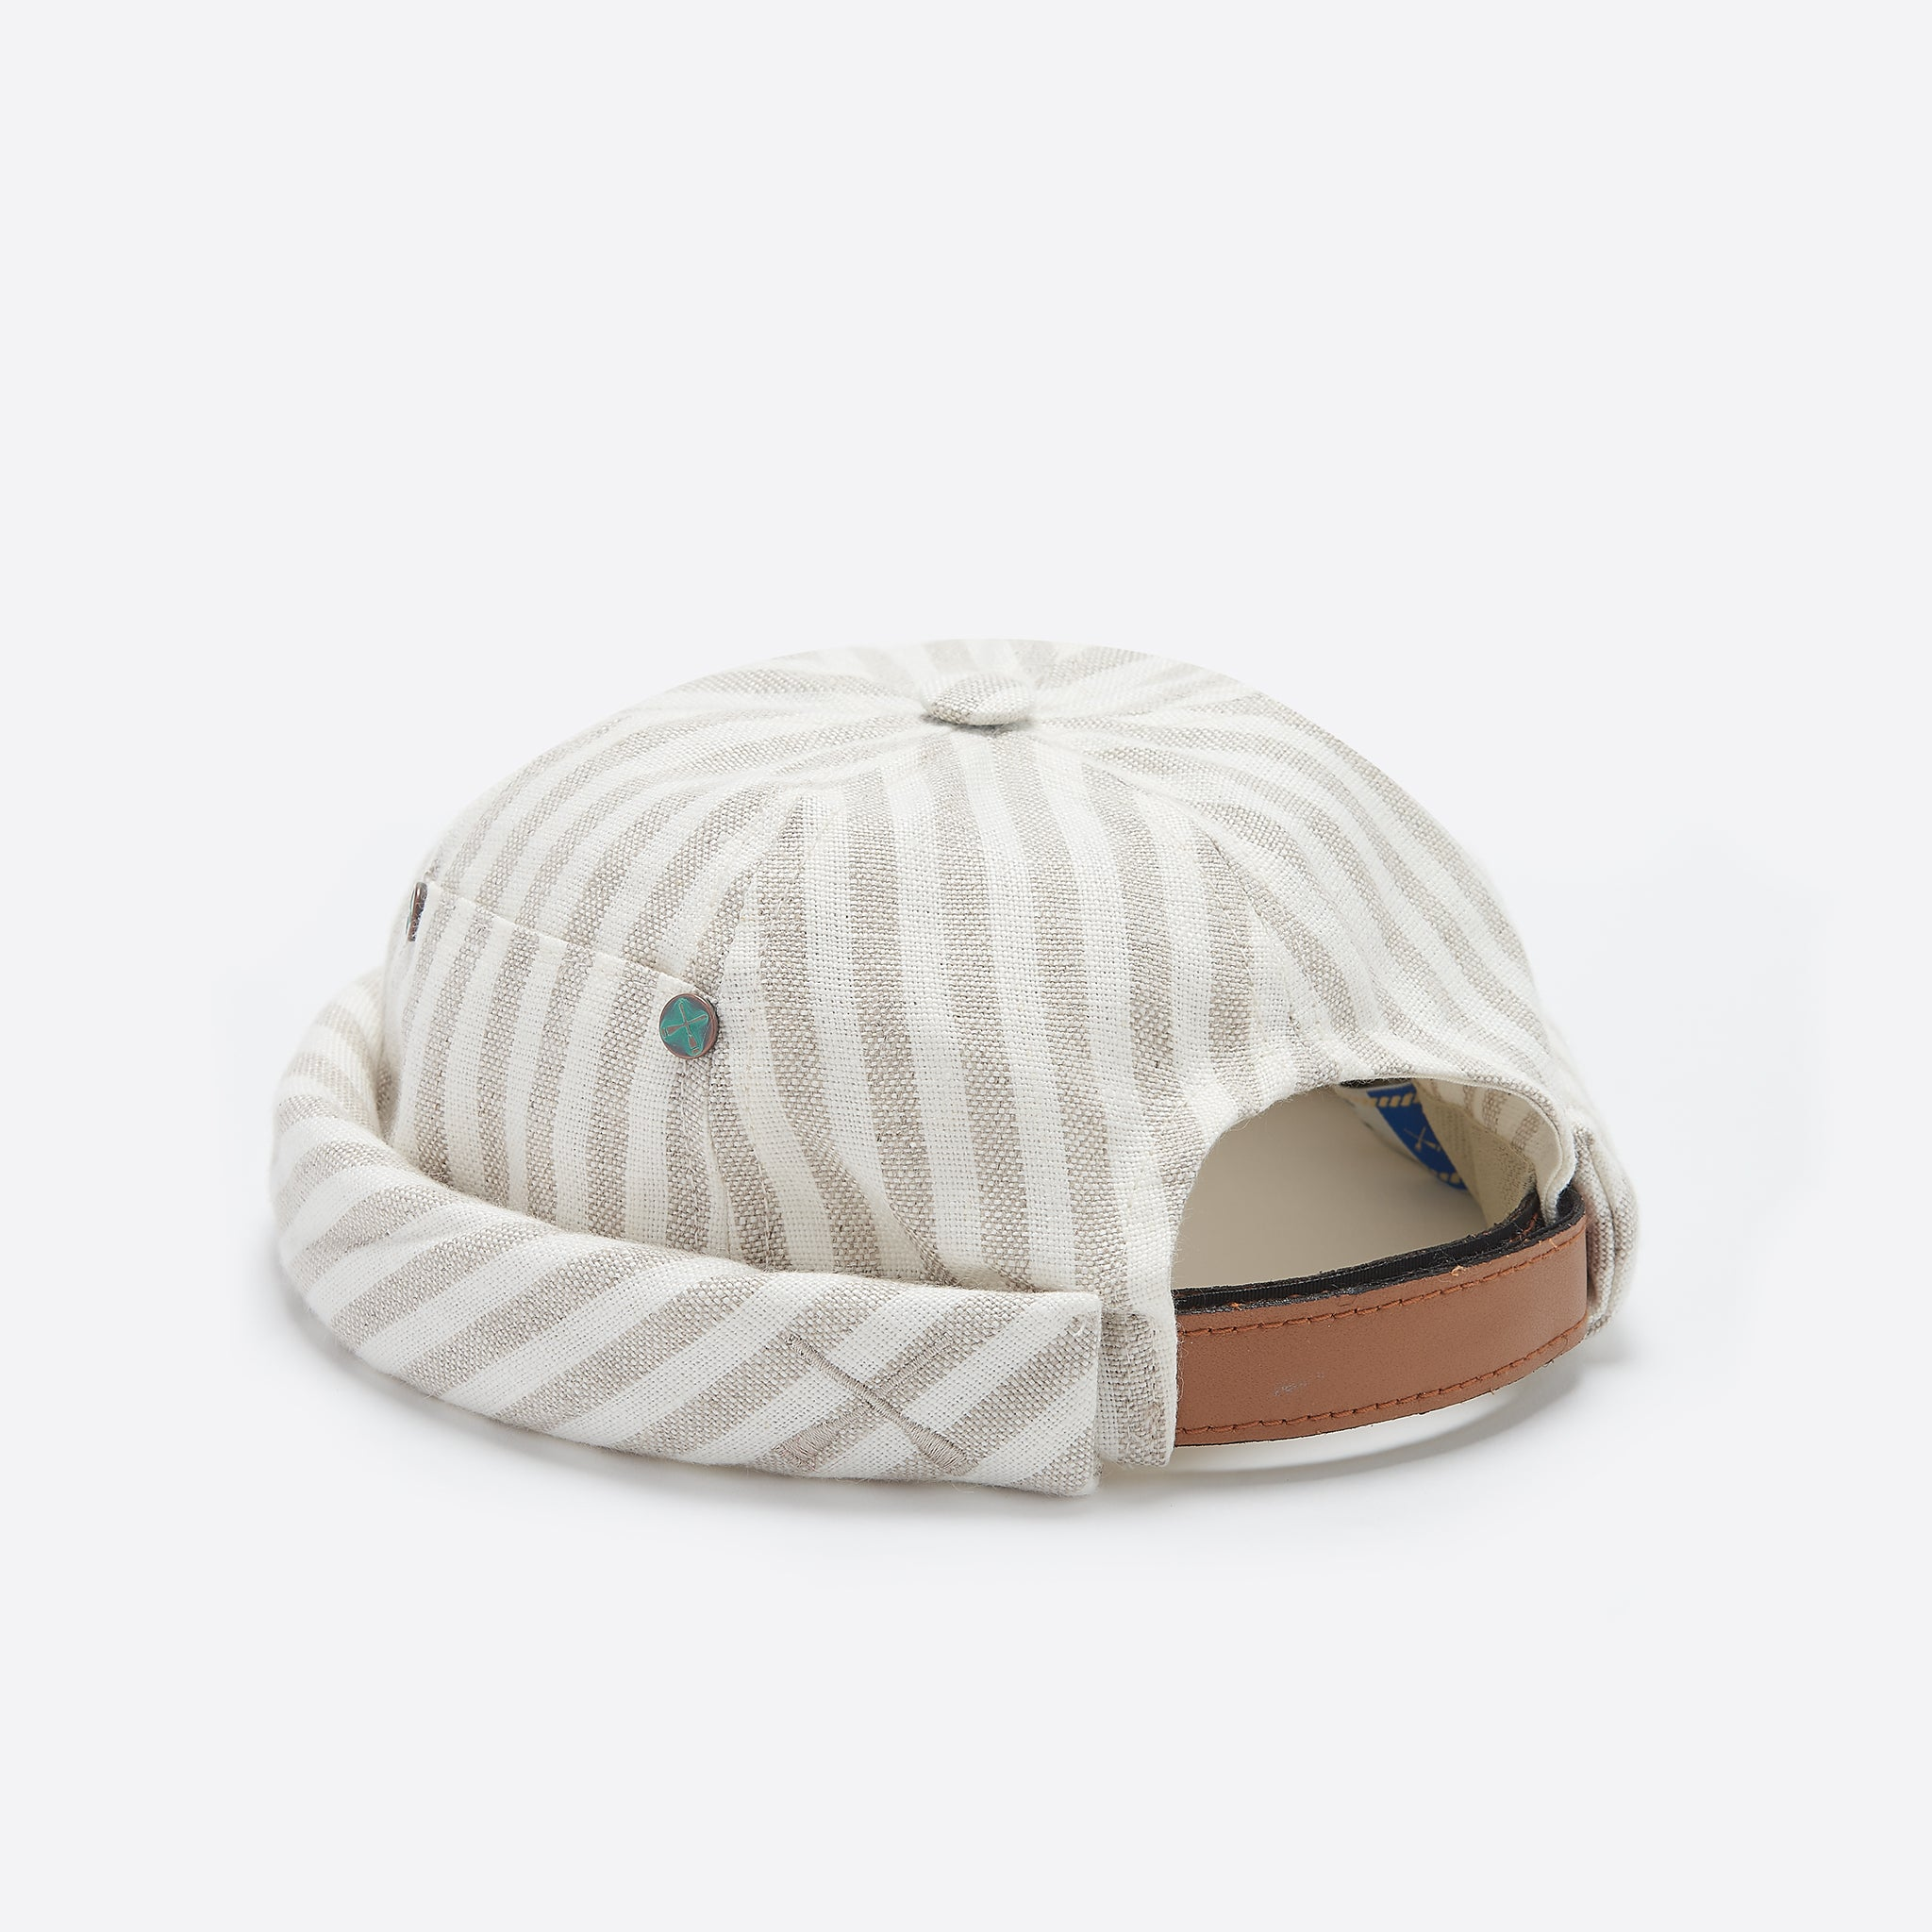 Beton Cire Miki Hat in Striped Beige Linen